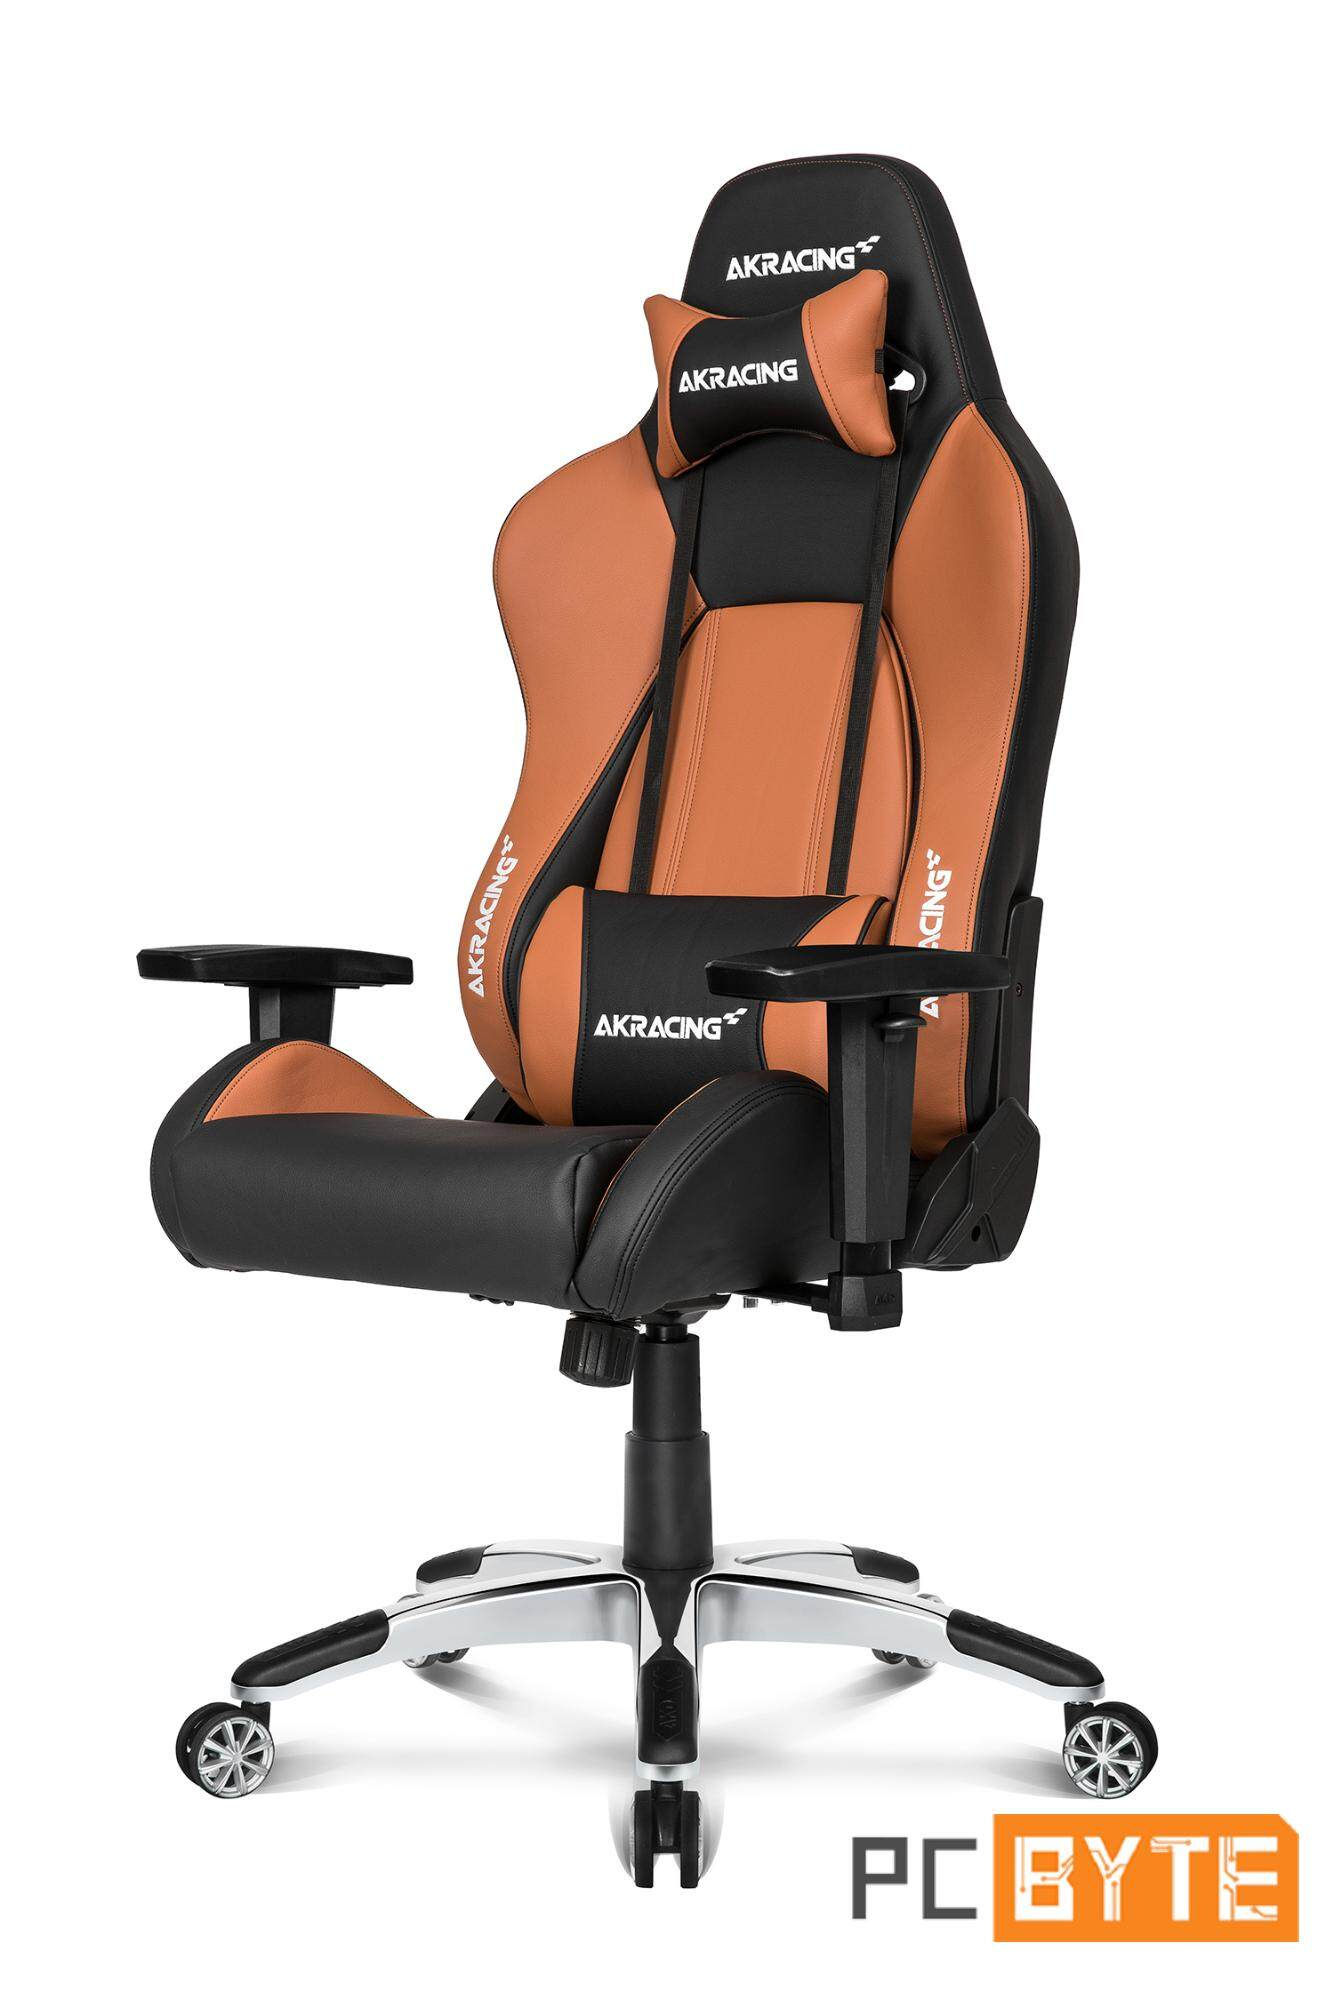 Cool Akracing Kerusi Permainan Price In Malaysia Best Akracing Spiritservingveterans Wood Chair Design Ideas Spiritservingveteransorg